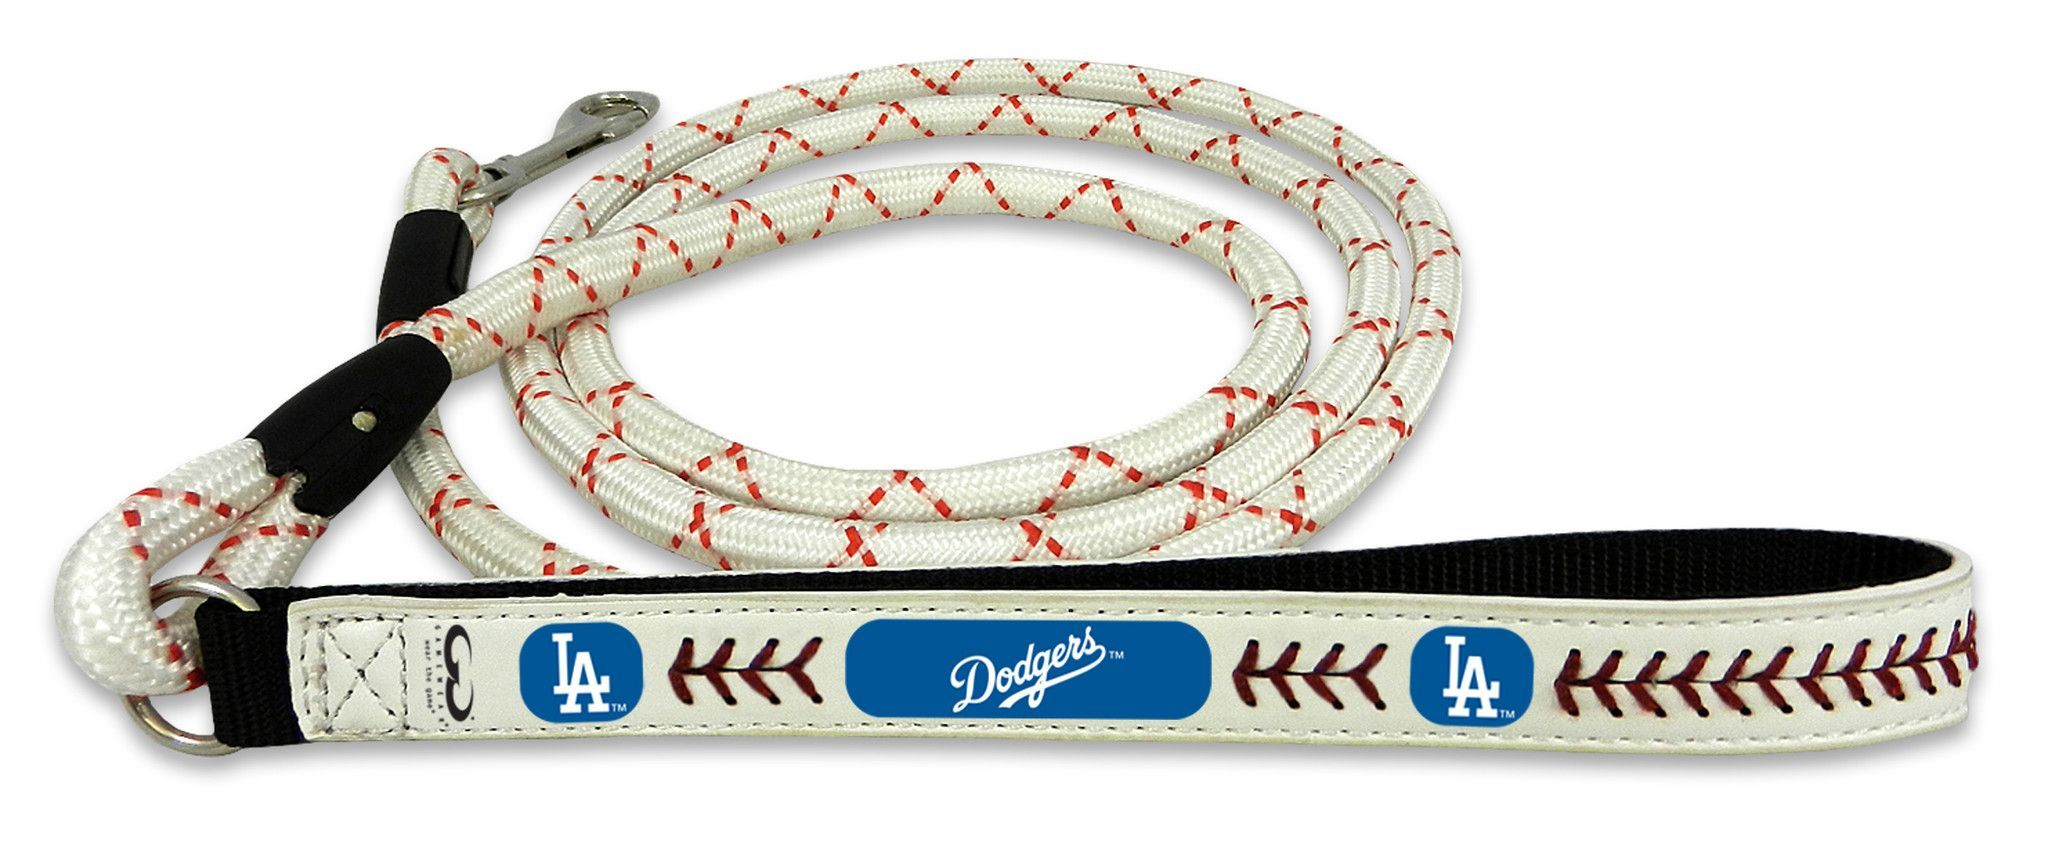 Los Angeles Dodgers Baseball Leather Leash - L